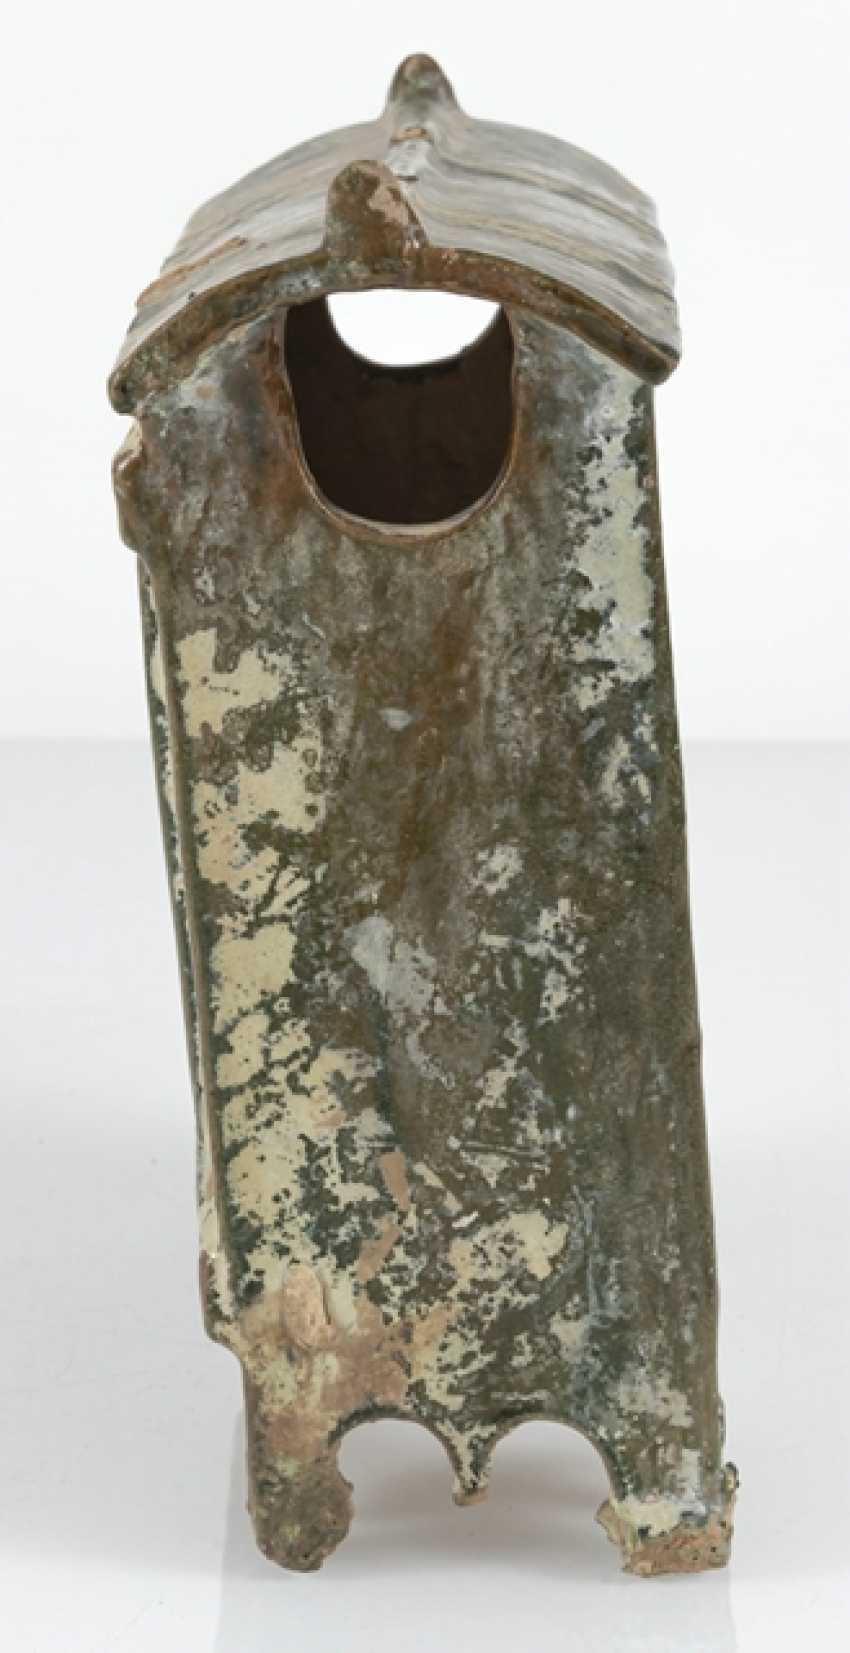 Model of a Shrine from Earthenware with lead-silicate glaze - photo 2